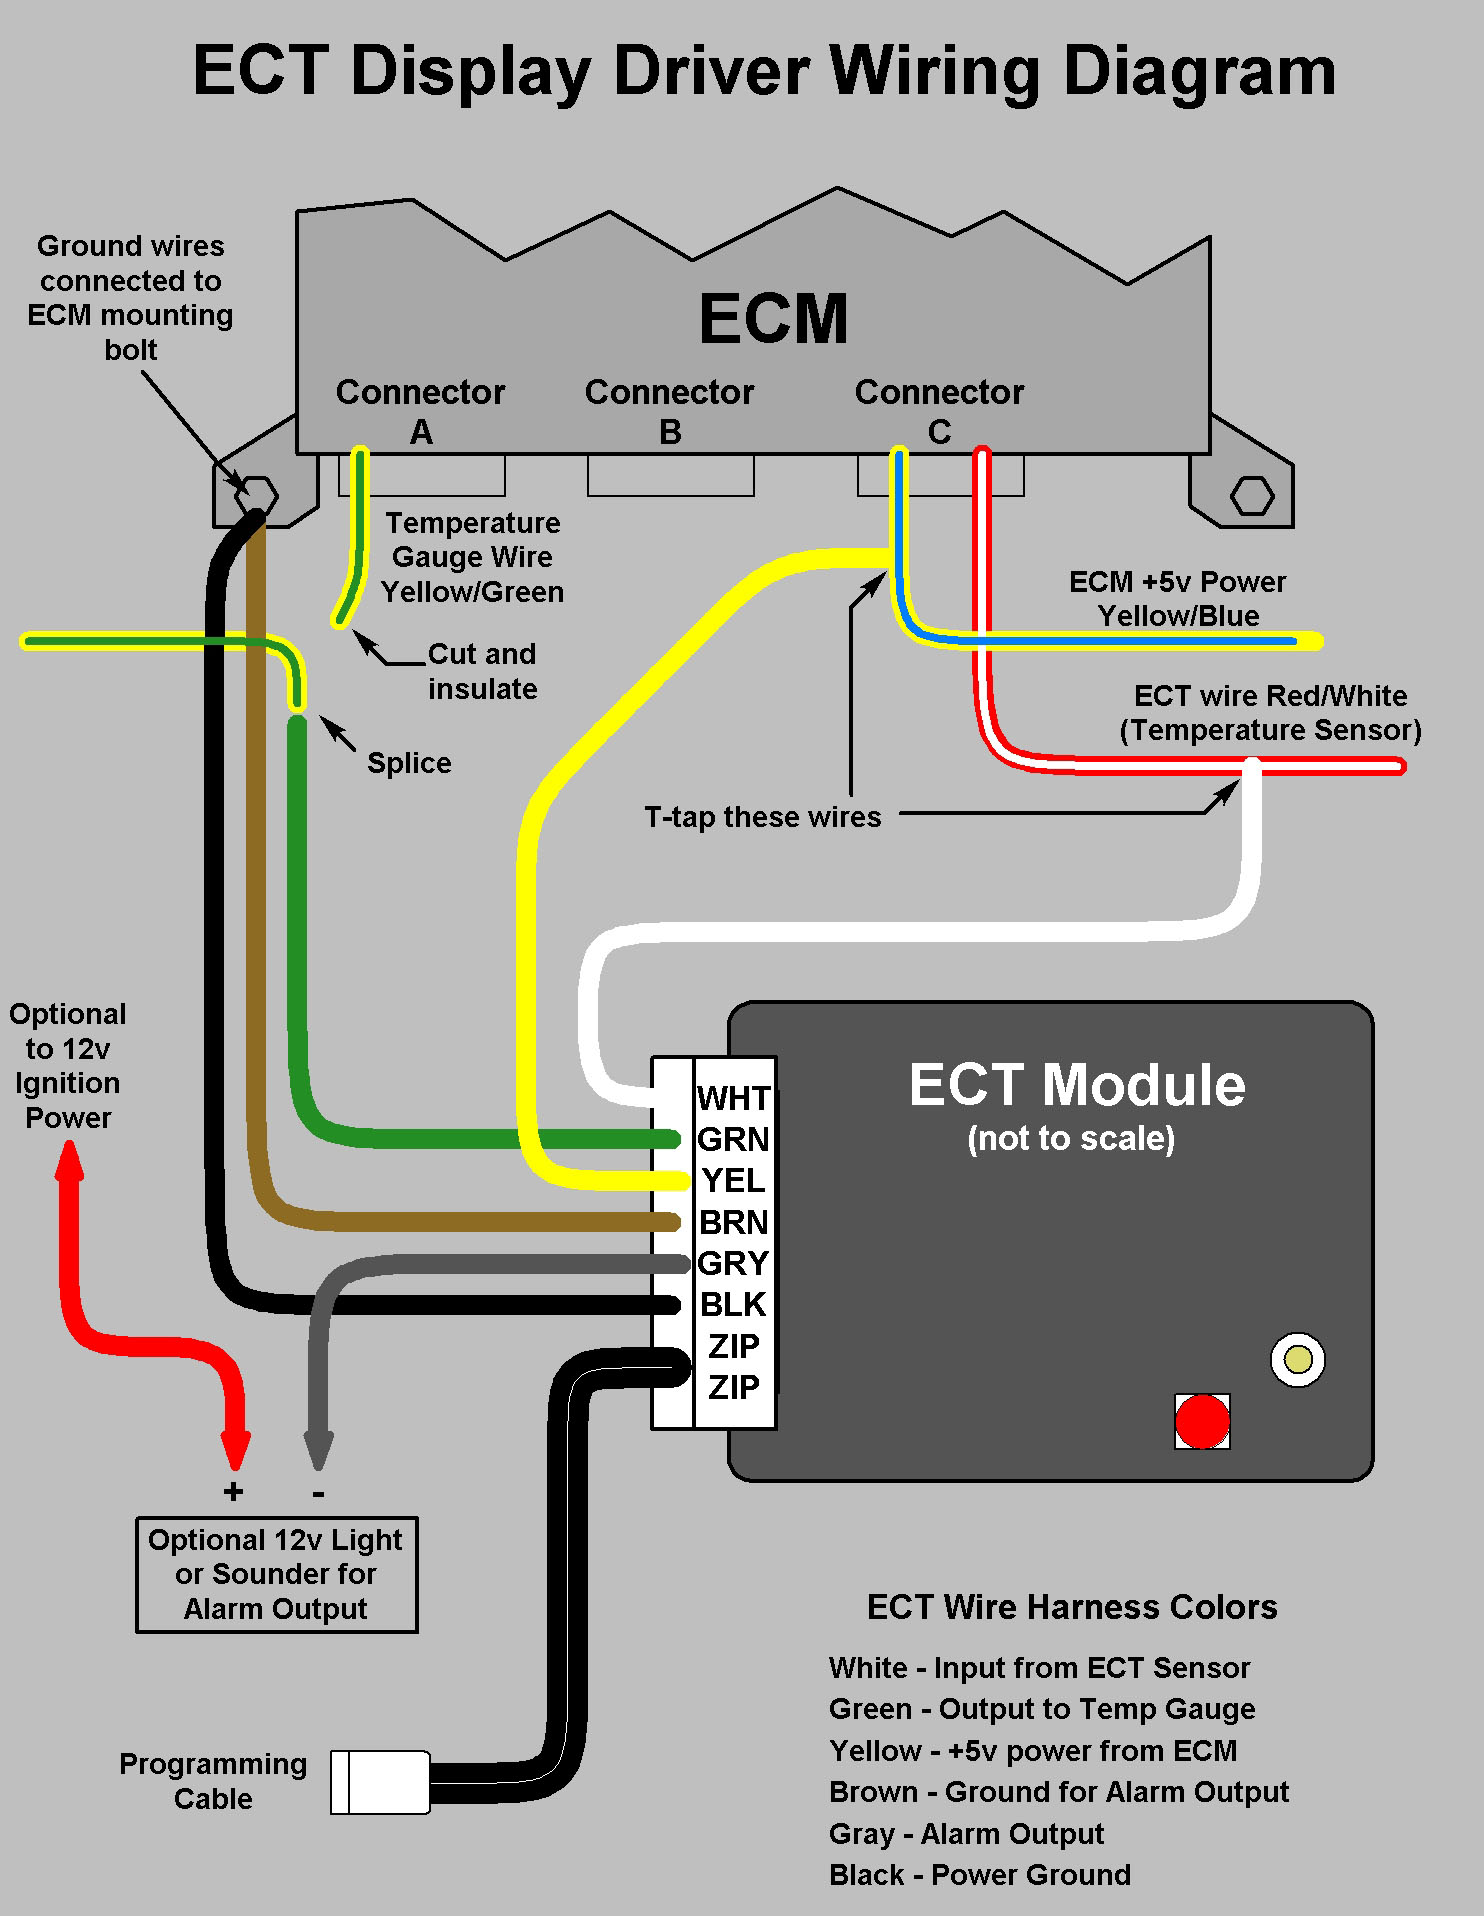 ECT wiring diagram ems wiring diagram medical diagram \u2022 free wiring diagrams life ems 8860 wiring diagram at cita.asia